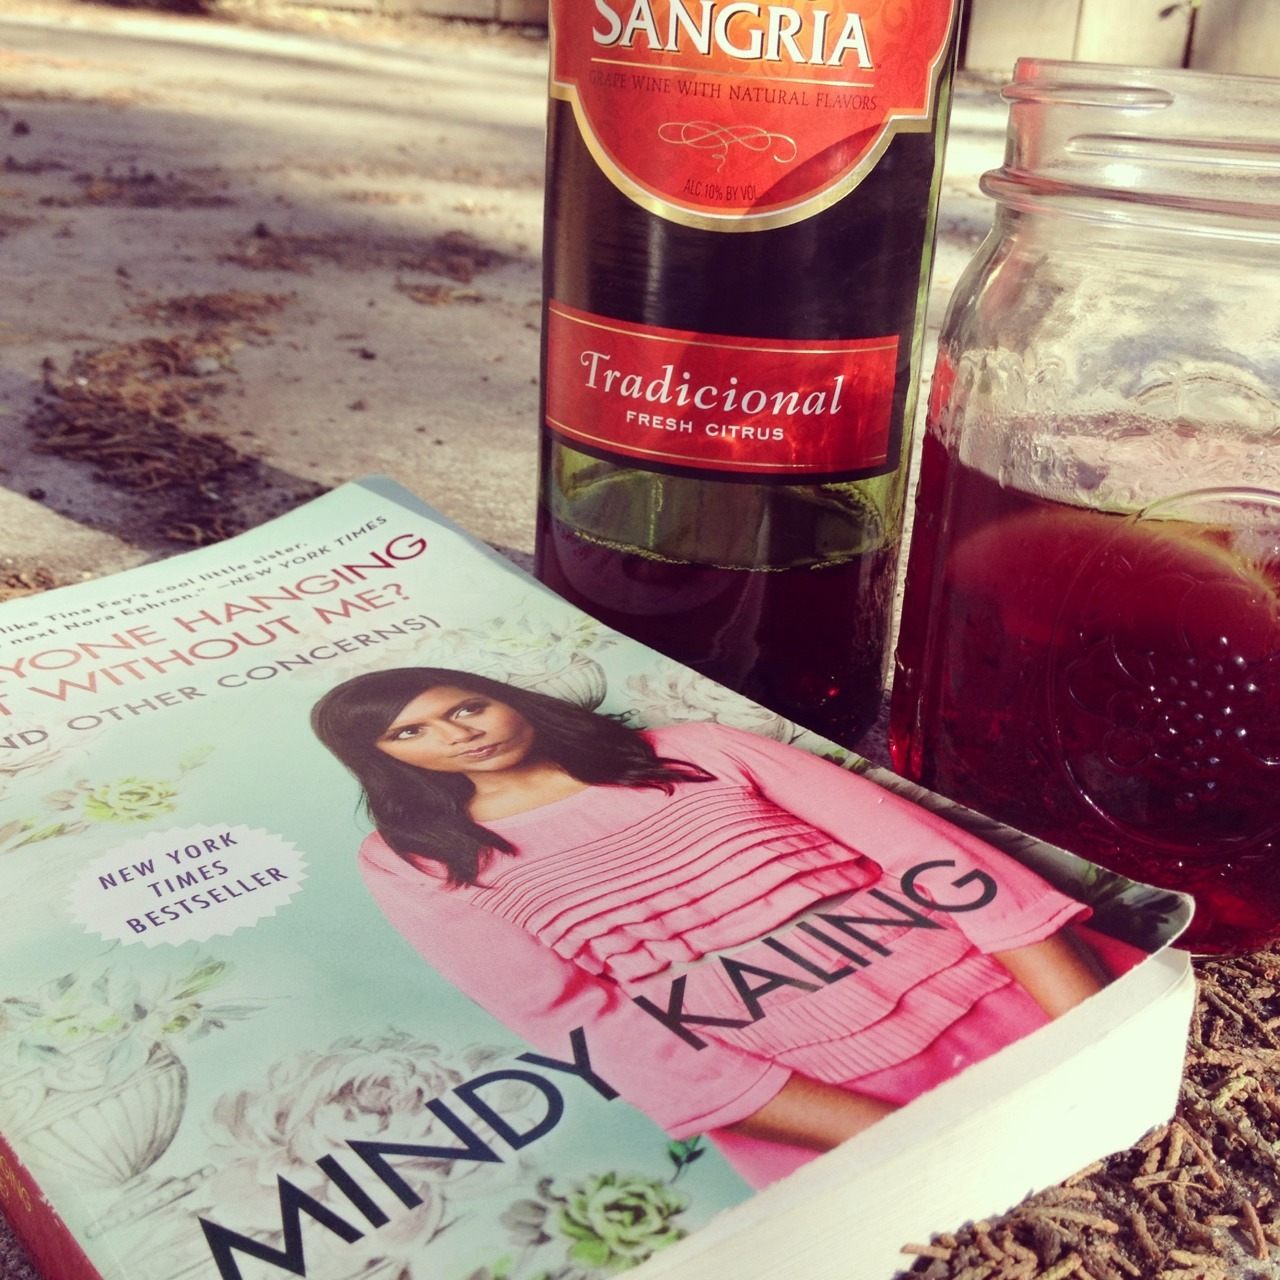 wine and books!